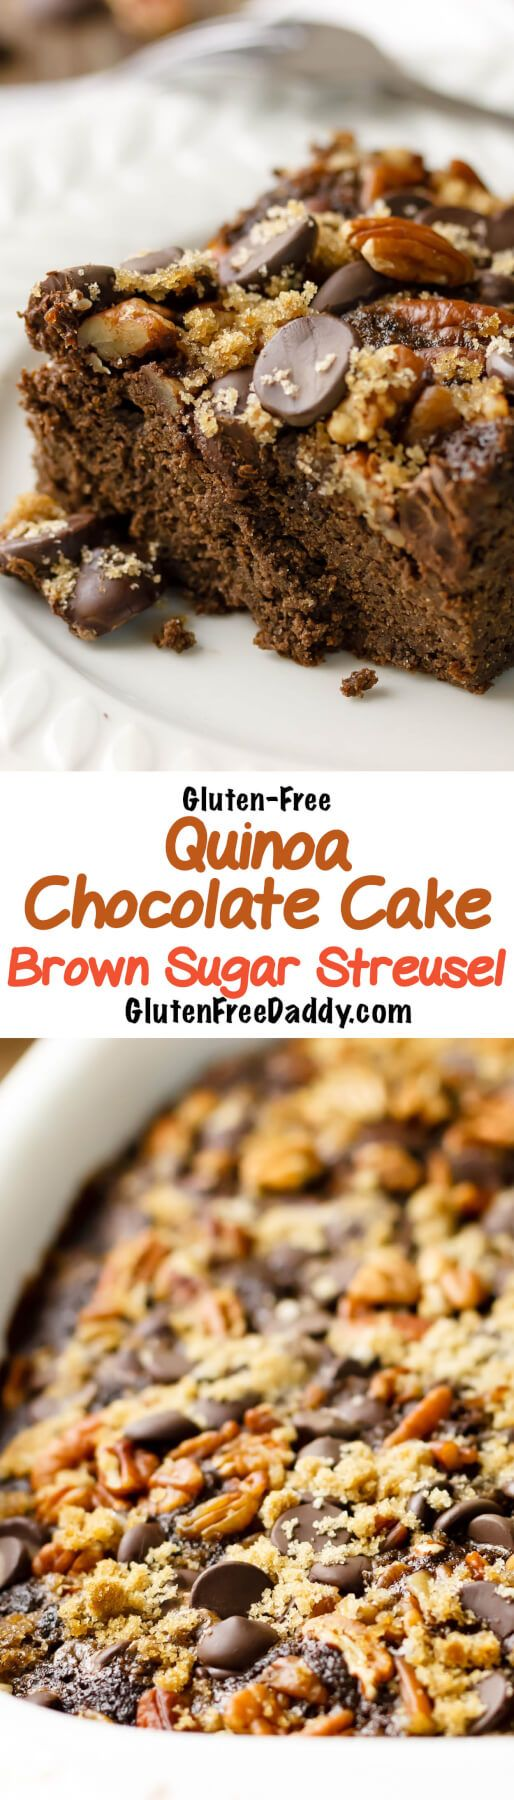 I love how this gluten-free chocolate cake is moist from the zucchini and healthy from the quinoa flour. The brown sugar streusel topping is to die for!